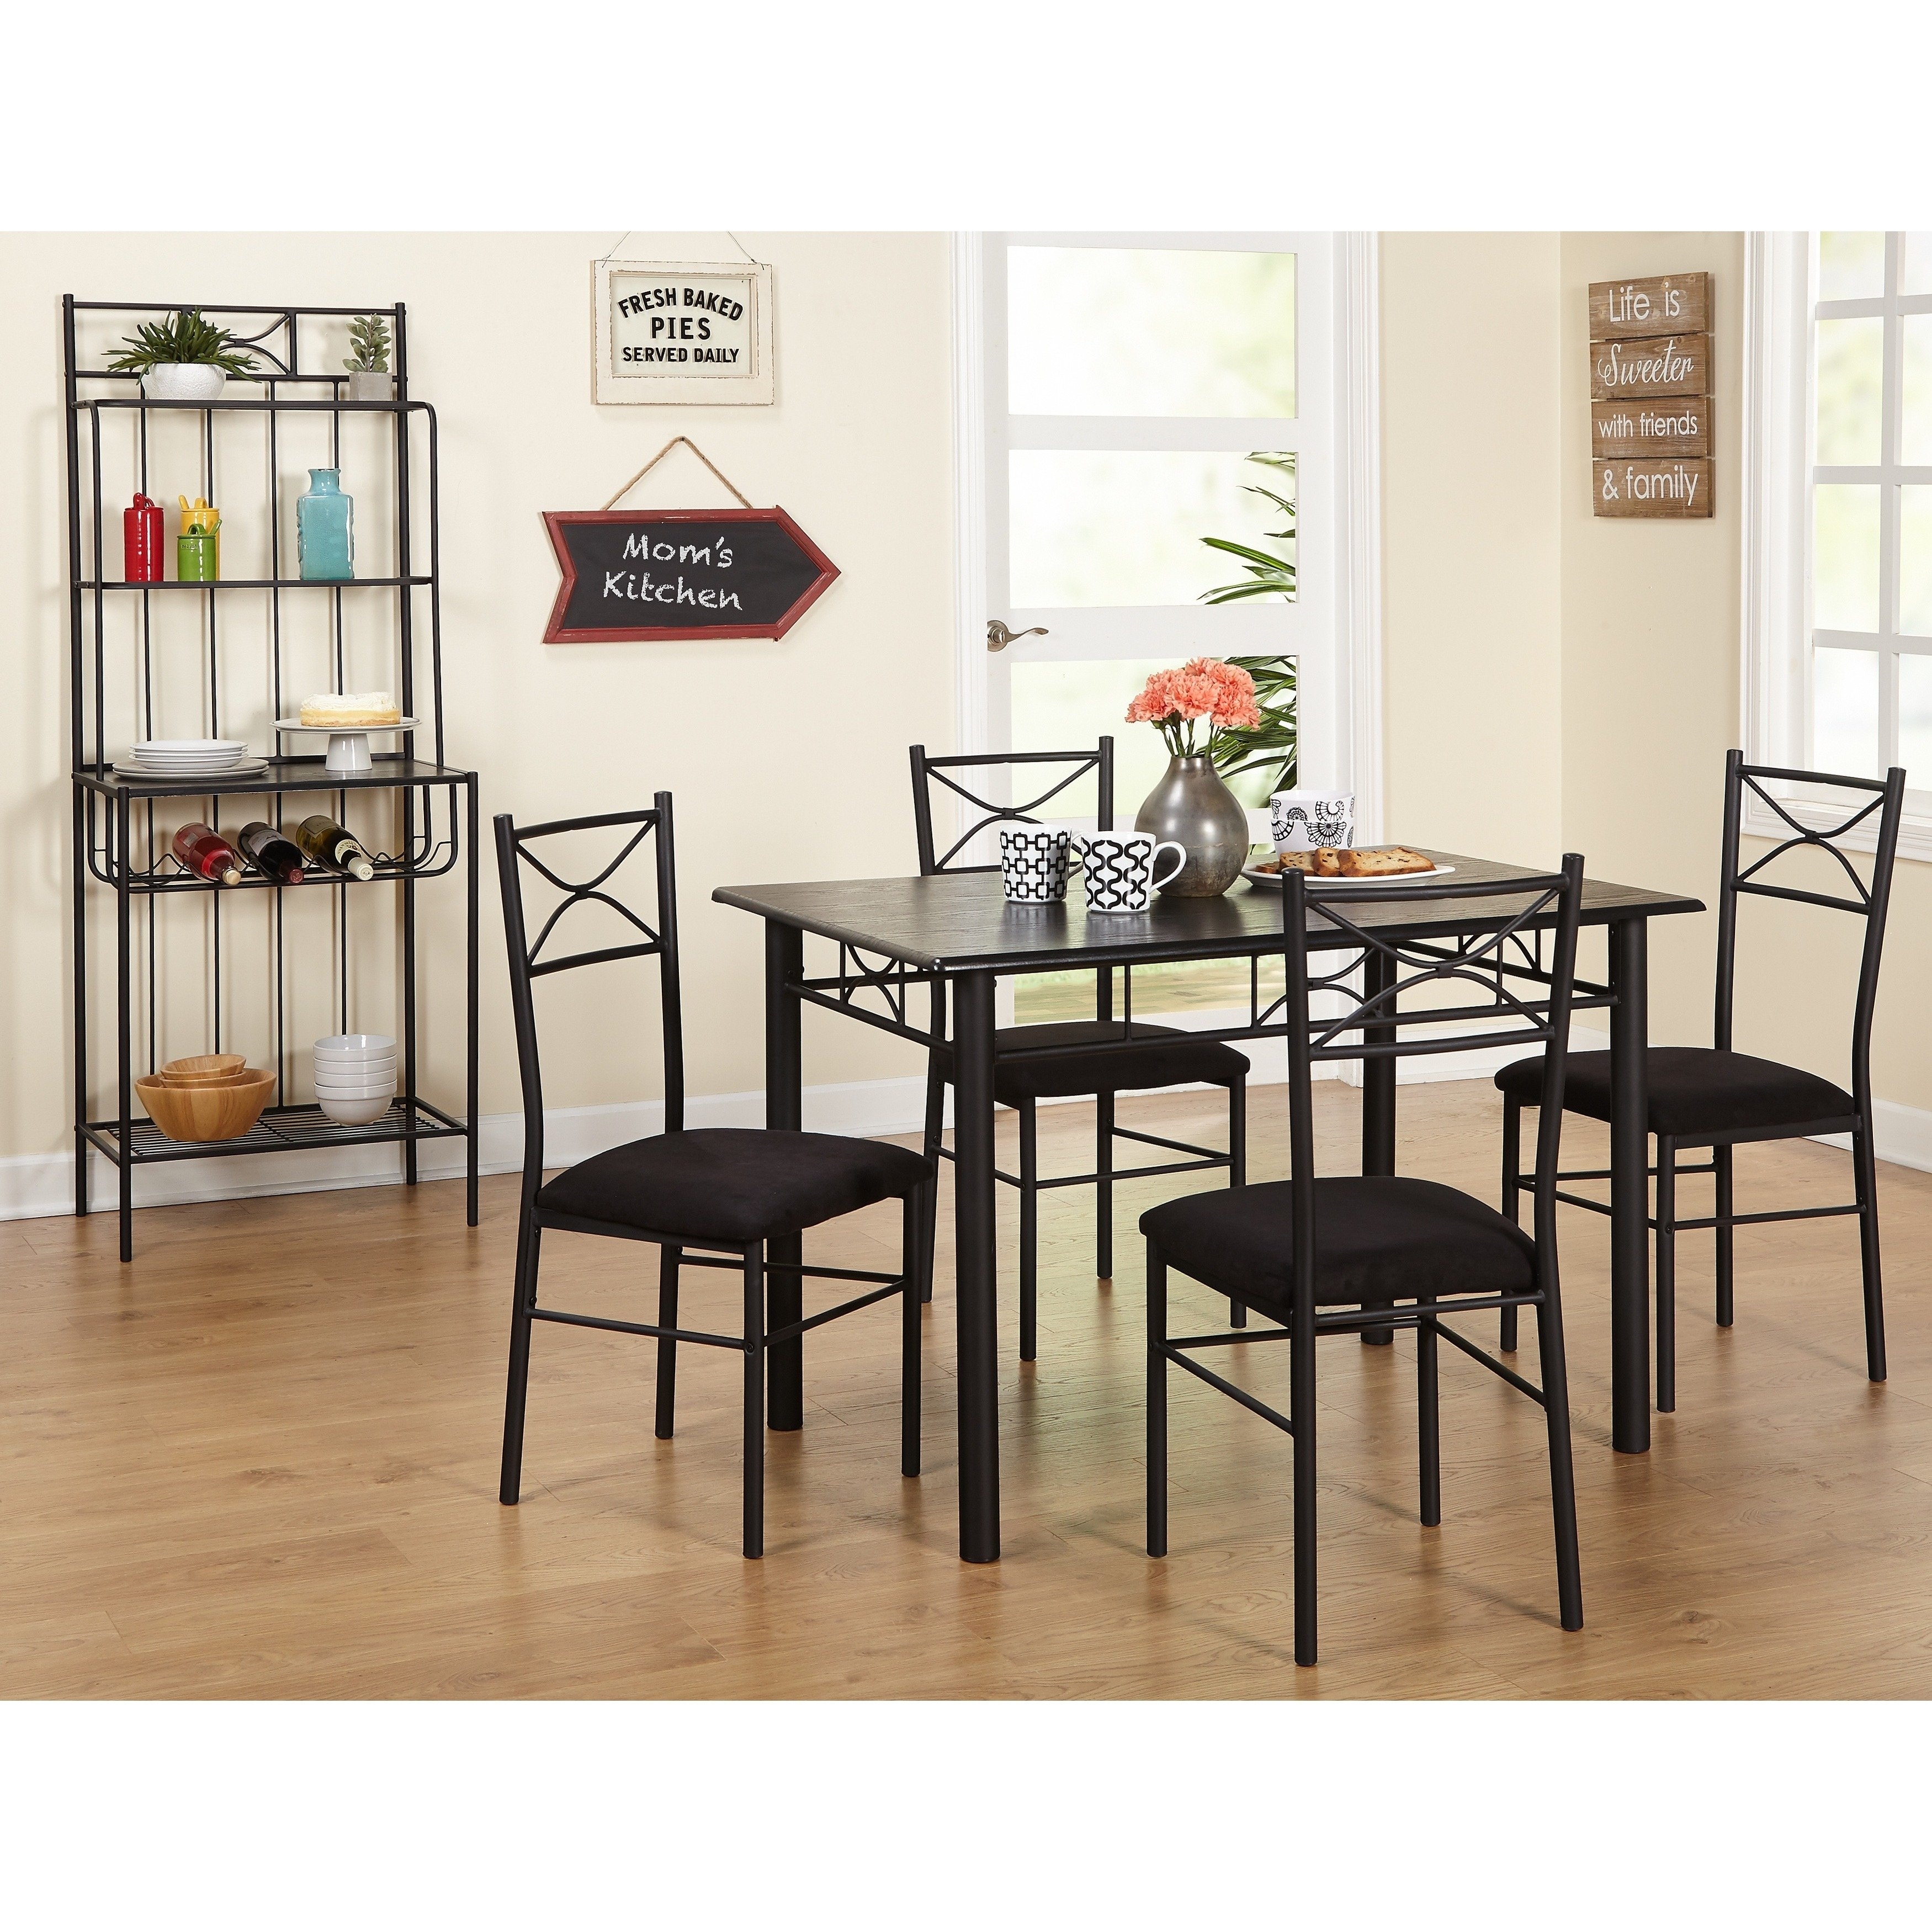 Shop Simple Living Valencia 6 Piece Metal Dining Set With Baker's Pertaining To Current Valencia 5 Piece 60 Inch Round Dining Sets (View 8 of 20)